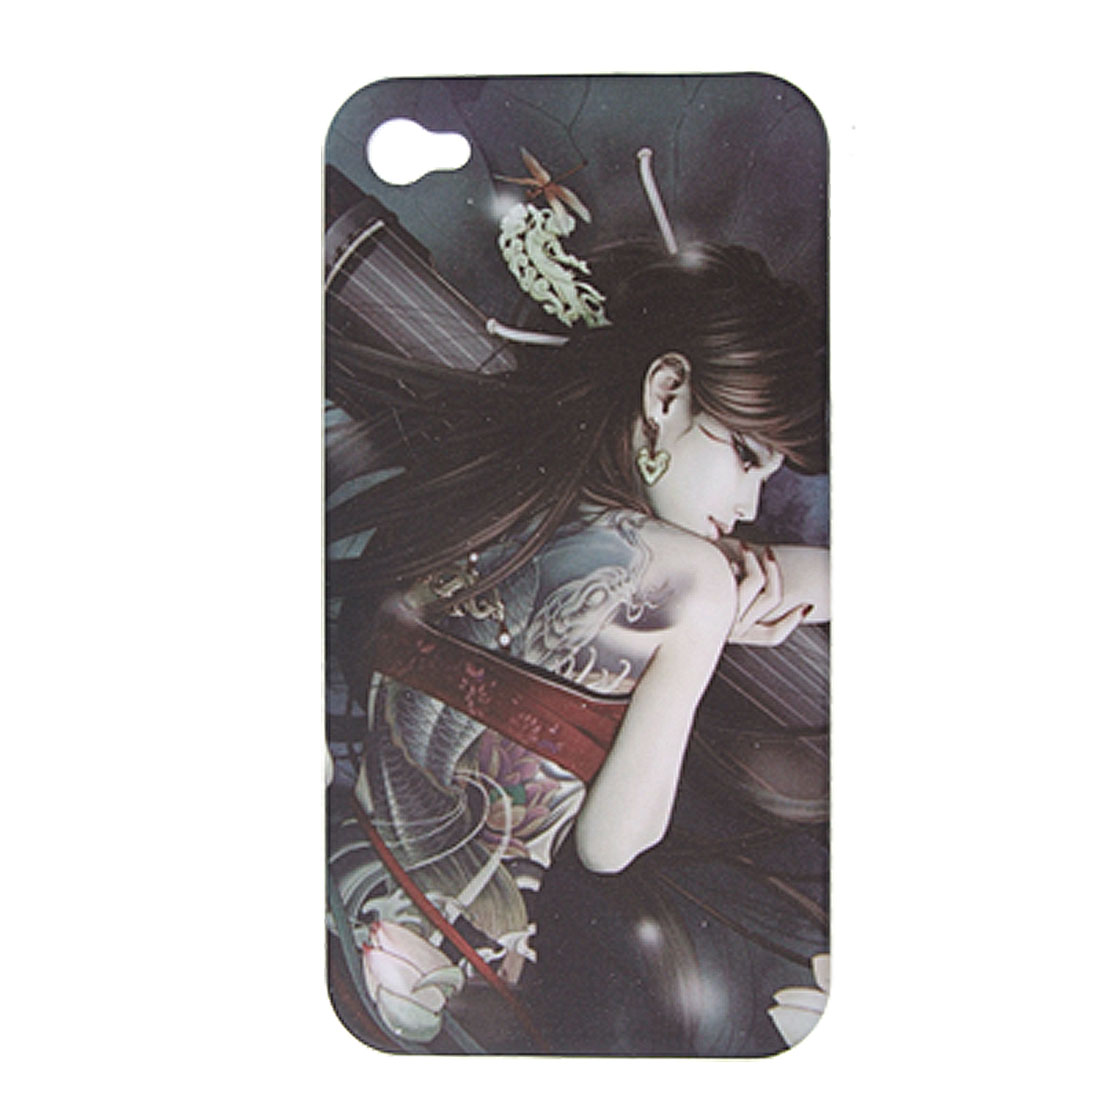 Tattoo Girl Design Rubberized Plastic Case for iPhone 4 4G